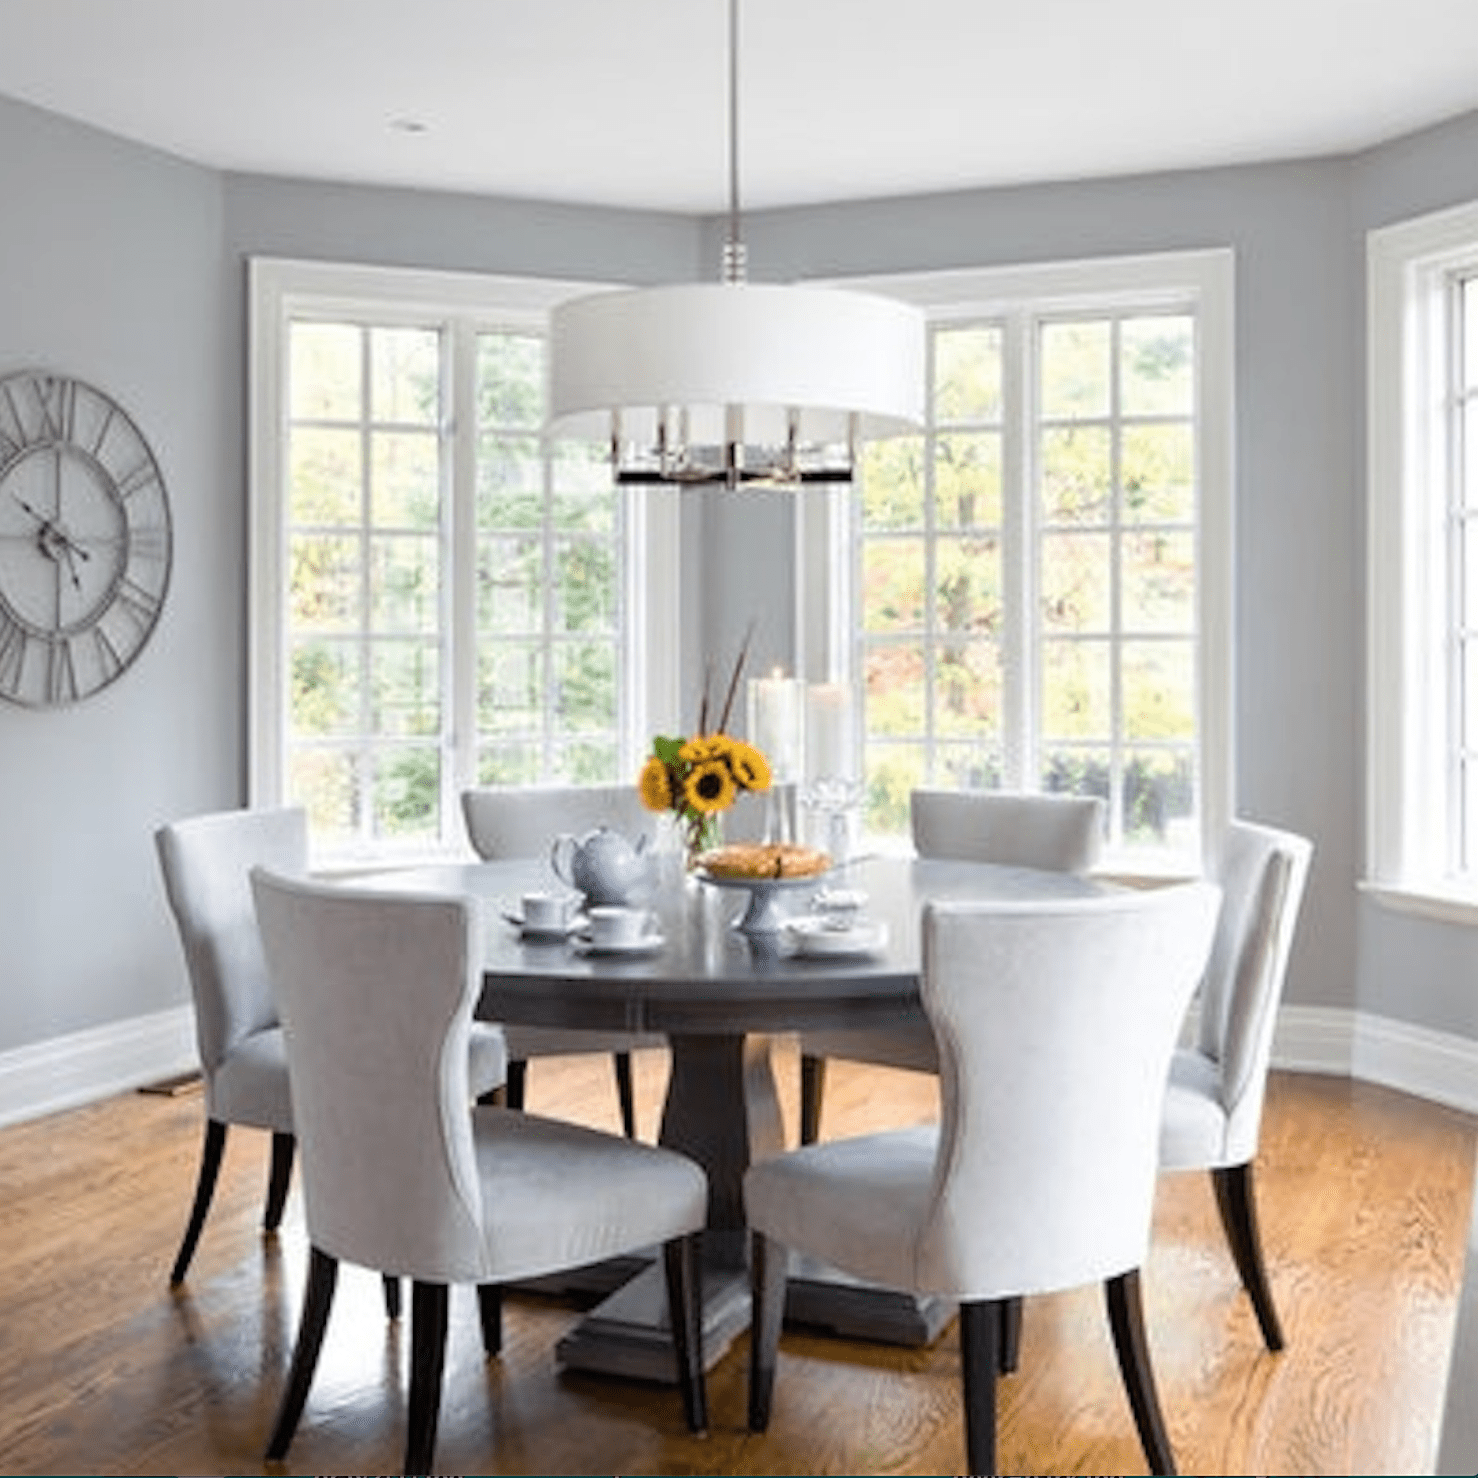 Dining room with white fabric chairs, table, hanging light, and gray walls.